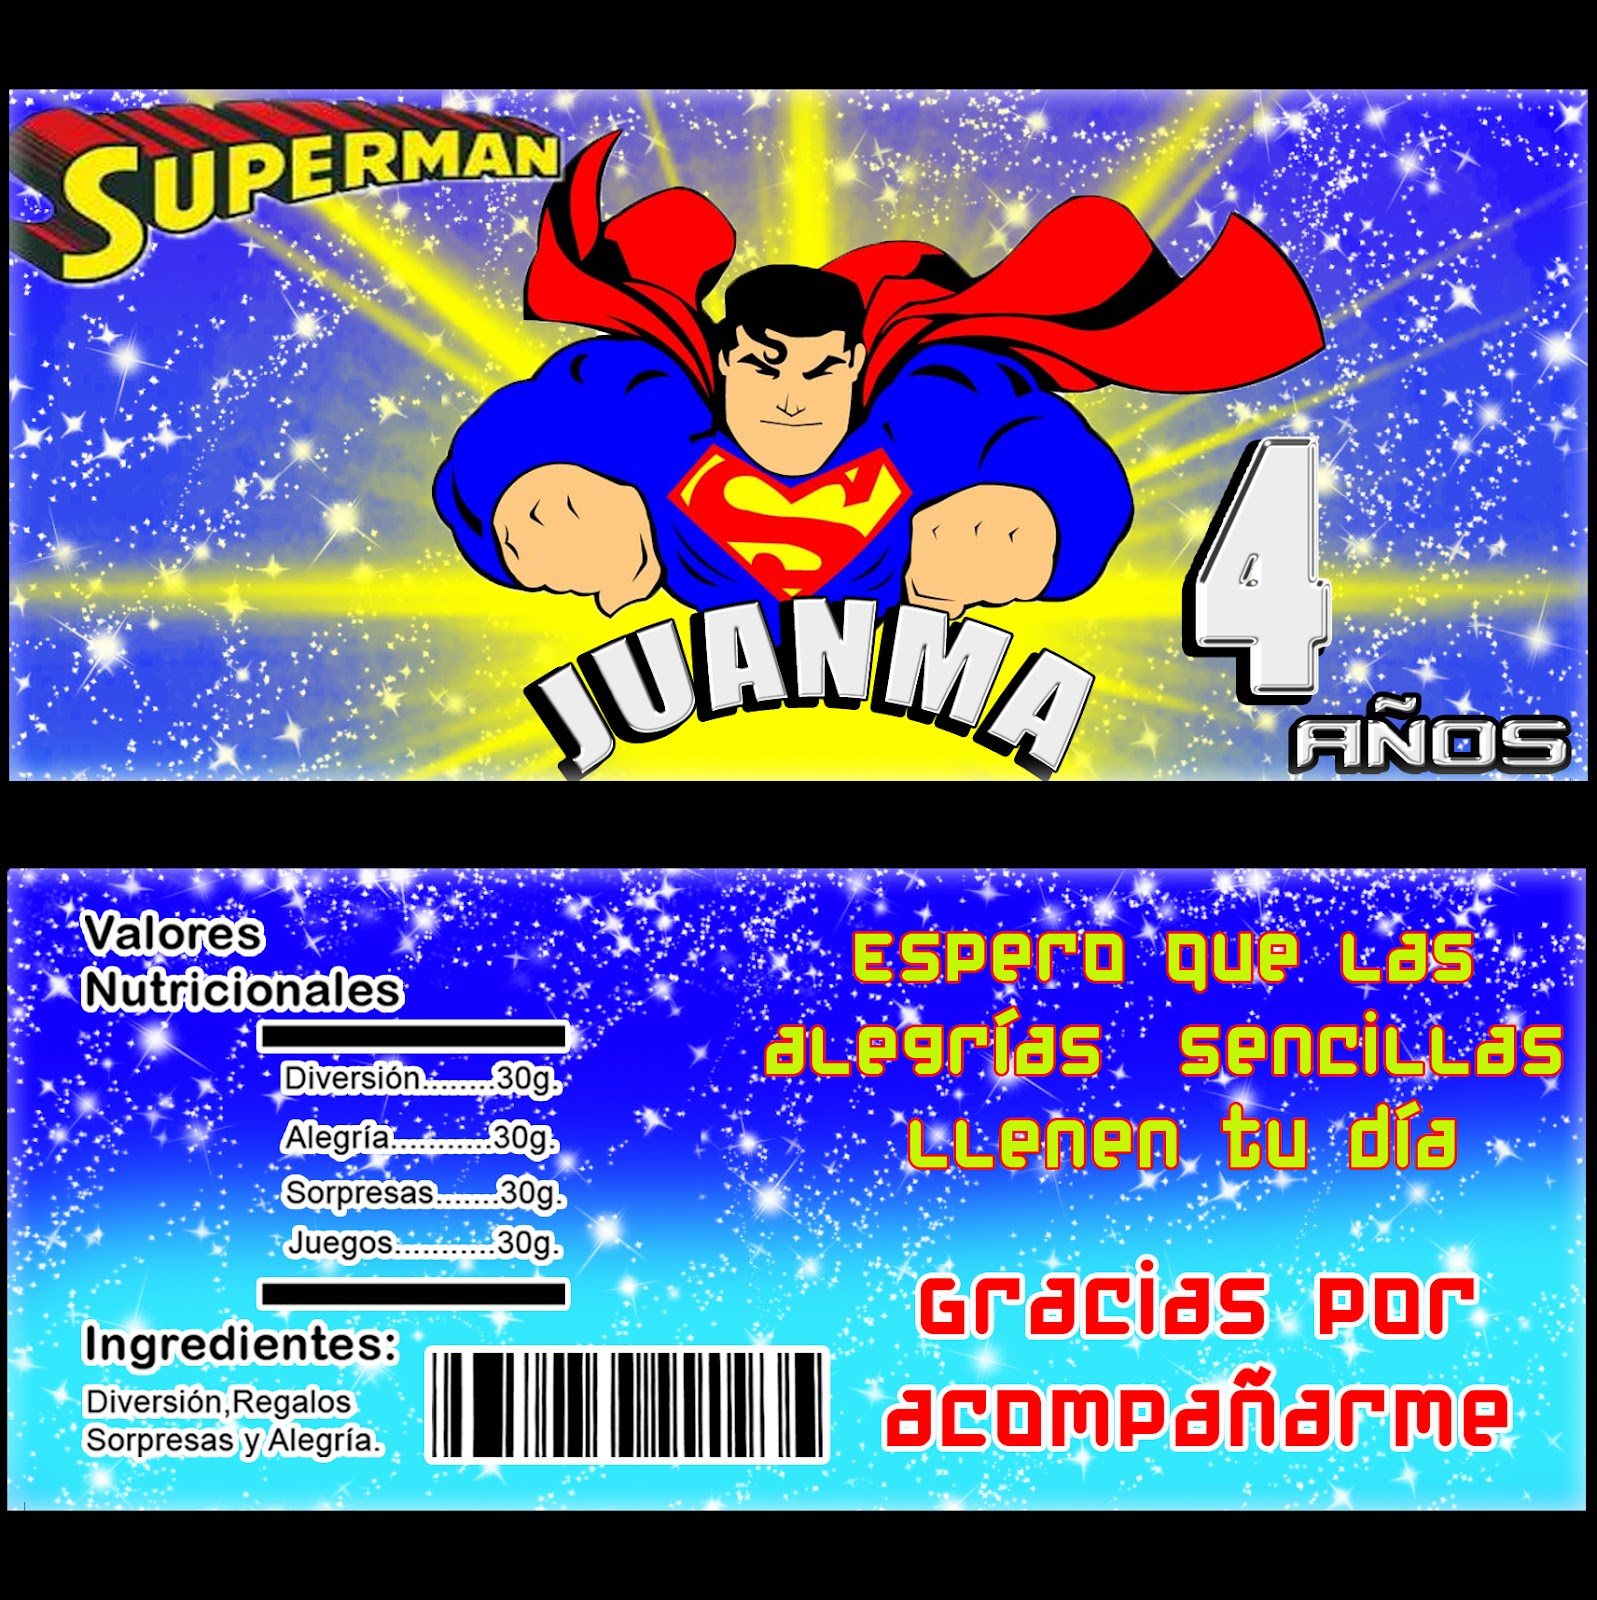 KITS IMPRIMIBLES Kit Imprimible Superman invitaciones Cumpleaños